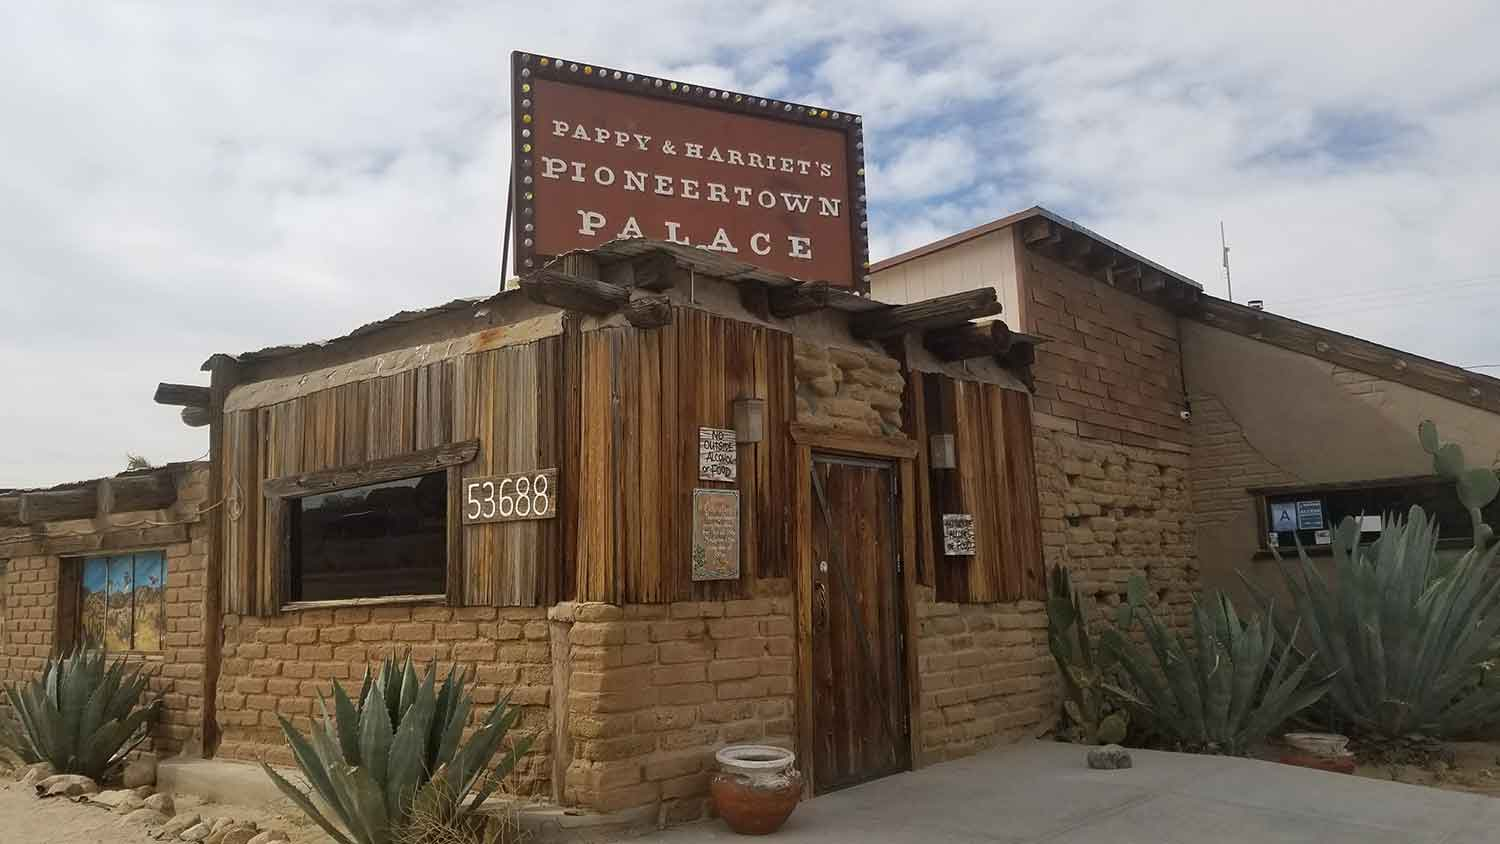 Legendary music venue, Pappy & Harriet's in located in Pioneertown, is a short drive from Joshua Tree.